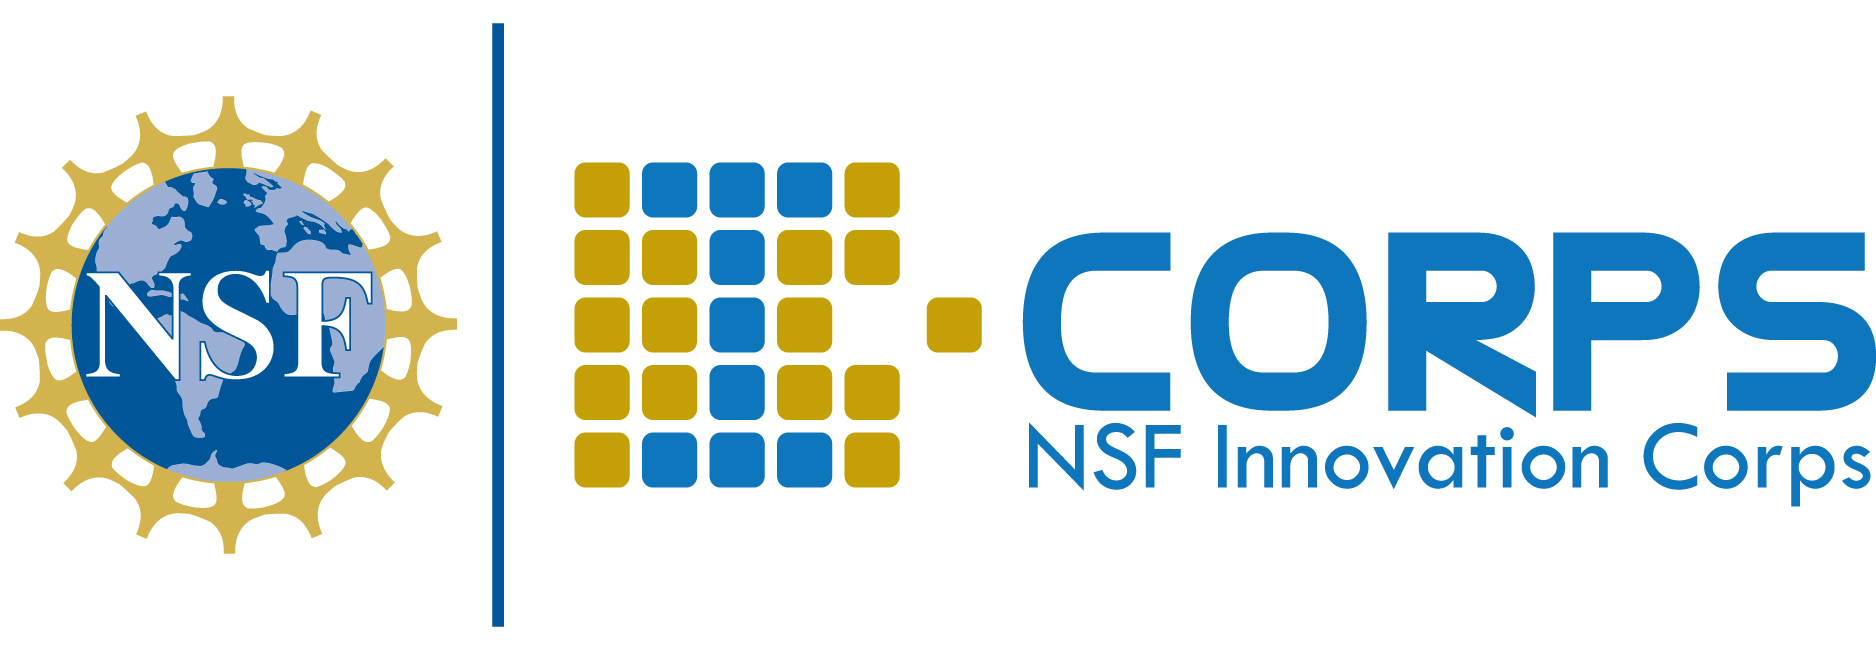 National Science Foundation (NSF) Innovation Corps (I-Corps) logo